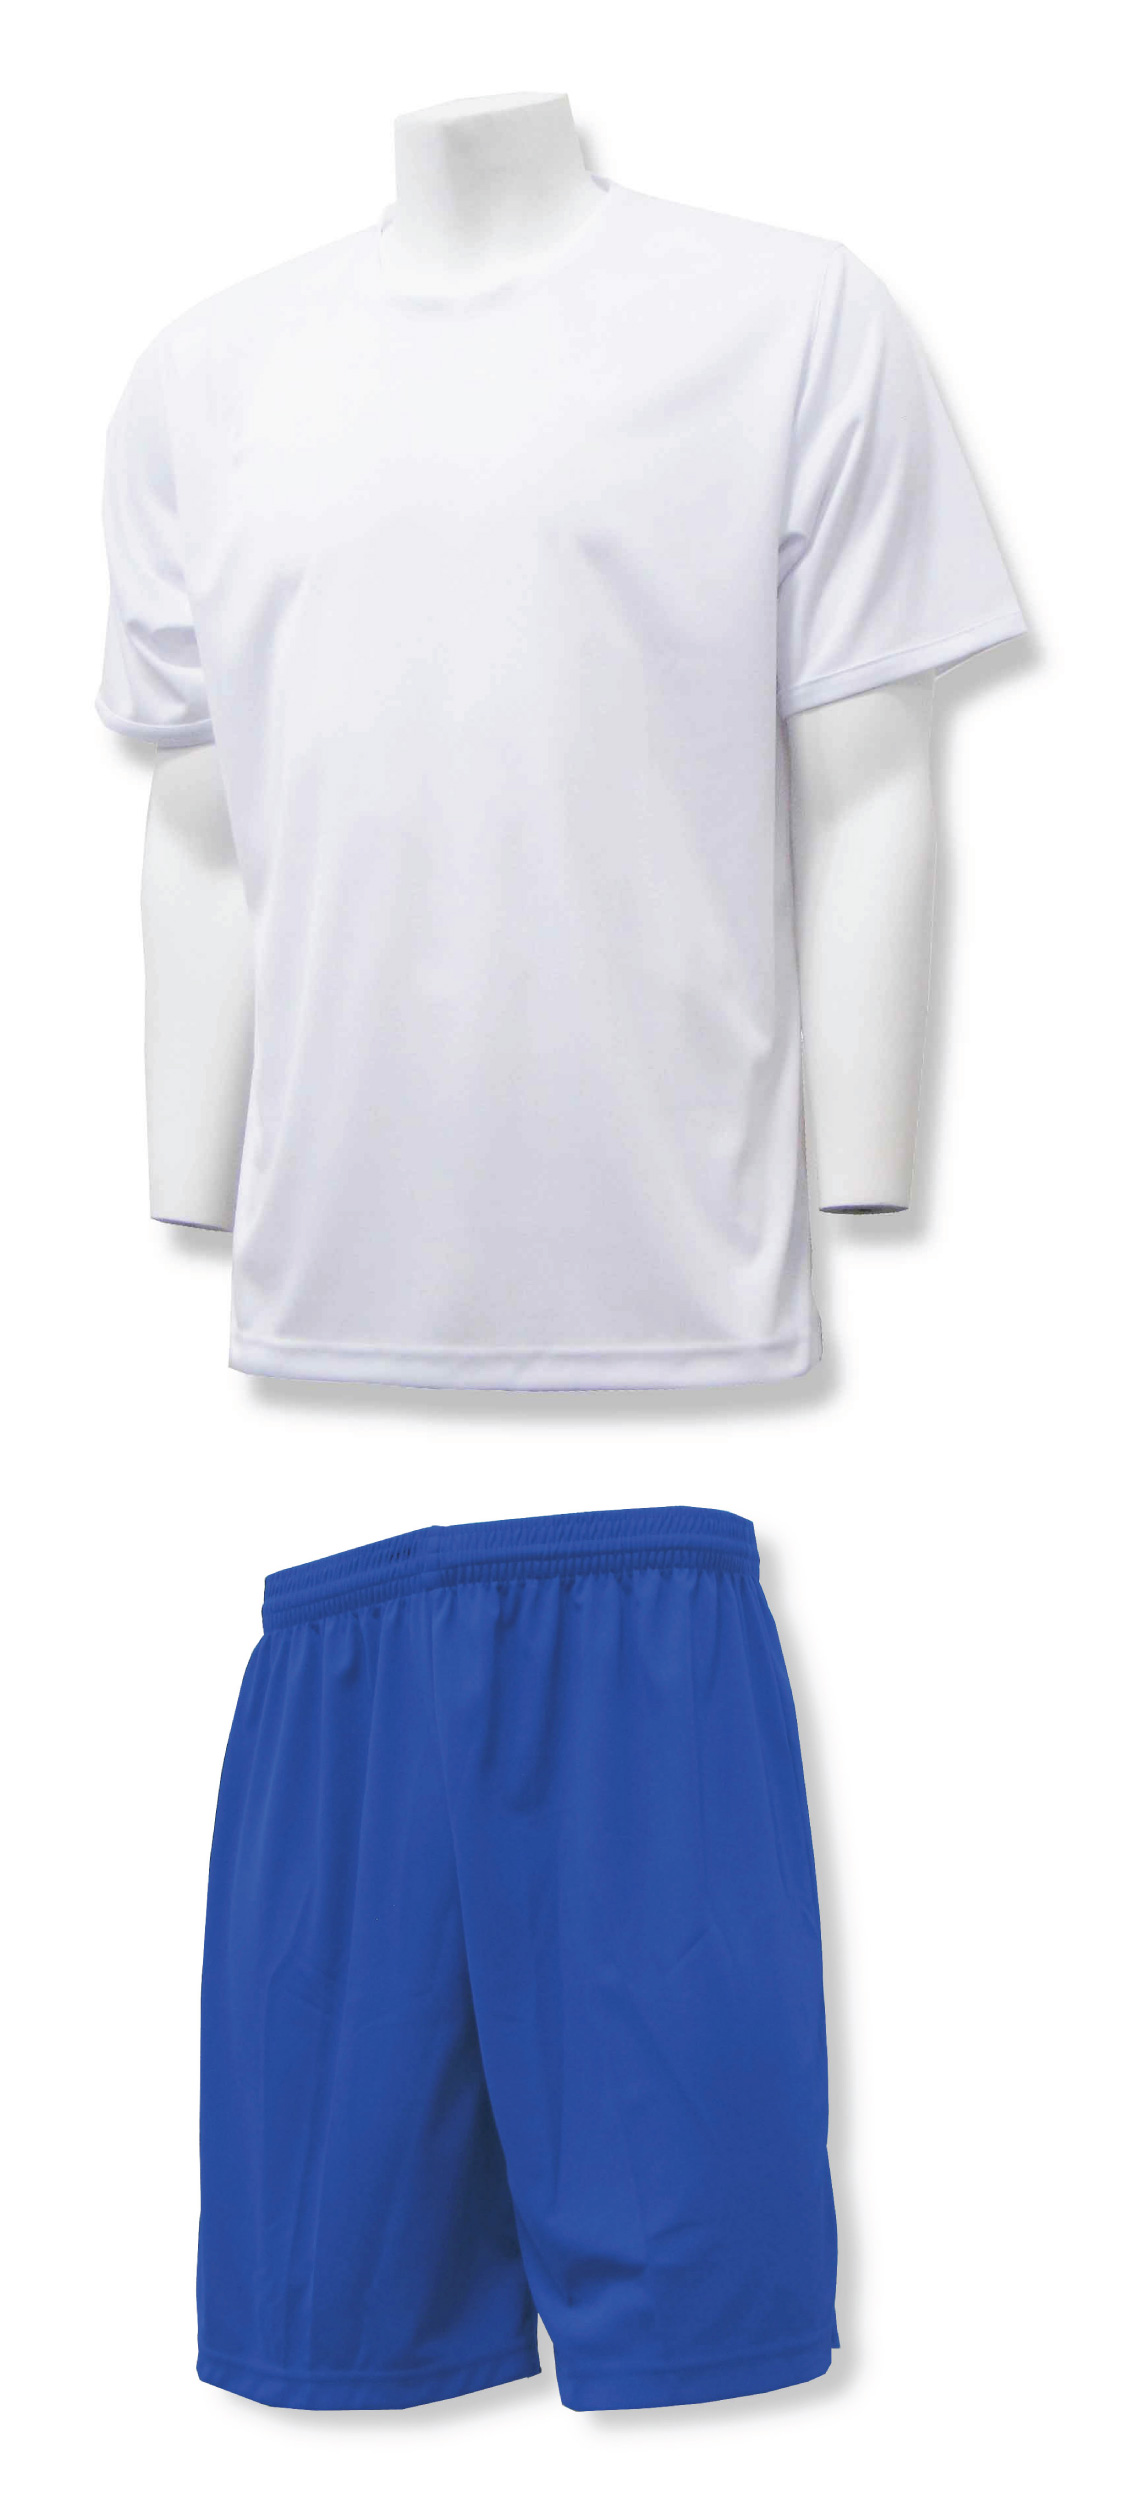 Soccer training uniform kit in white/royal by Code Four Athletics